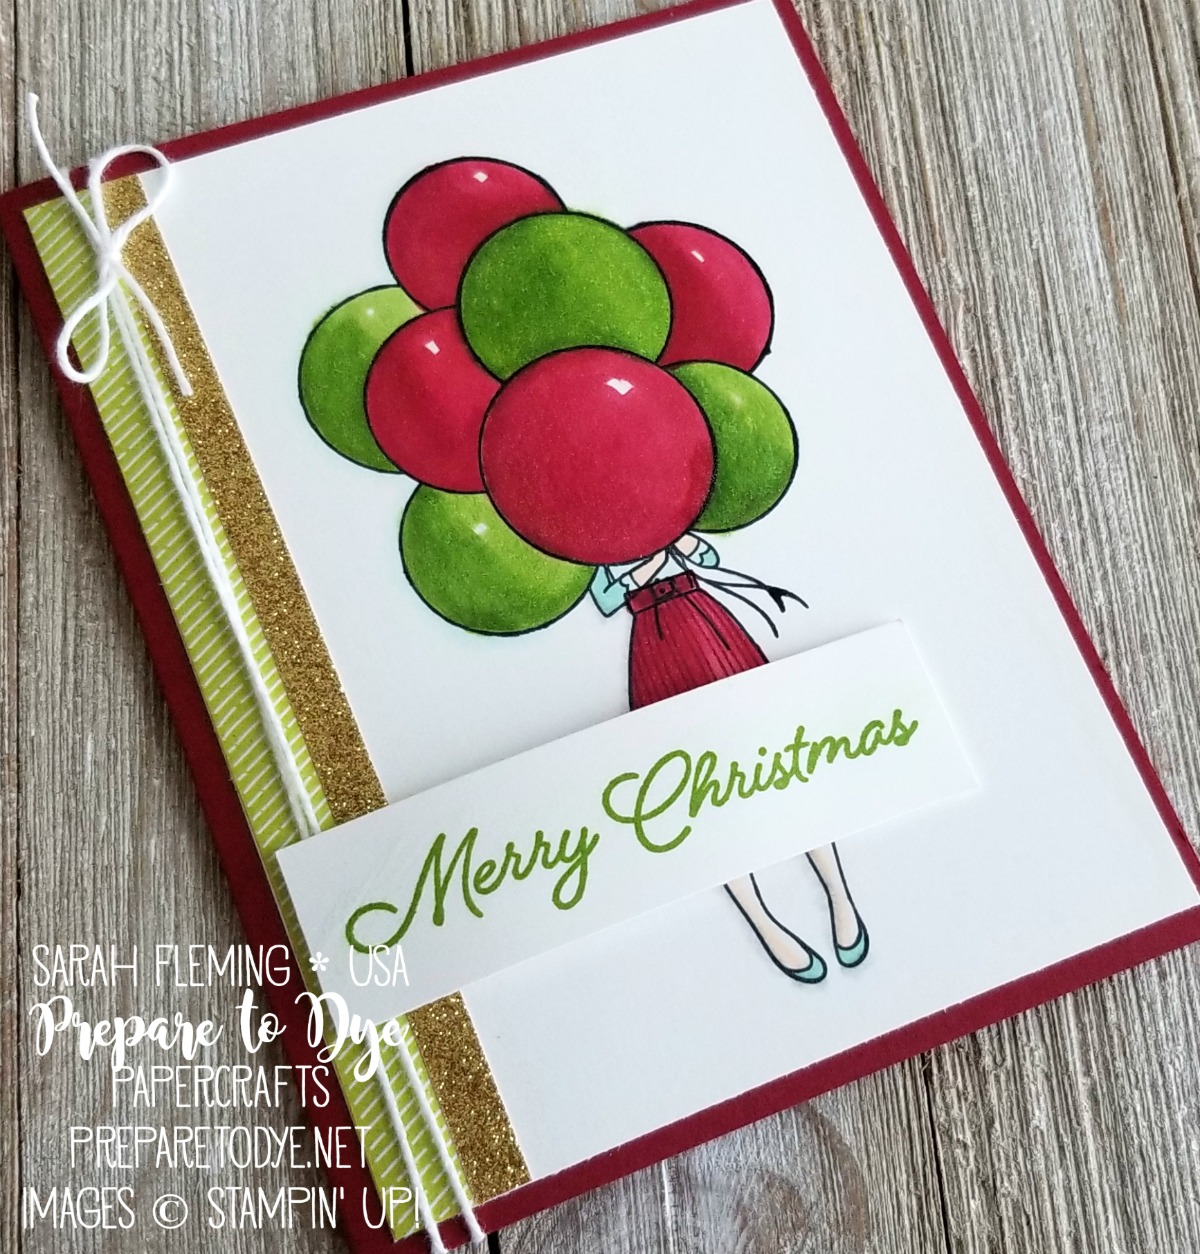 Stampin' Up! Hand Delivered hostess stamp set with Blended Seasons stamps, Animal Expedition paper, Stampin' Blends alcohol markers - Sarah Fleming - Prepare to Dye Papercrafts